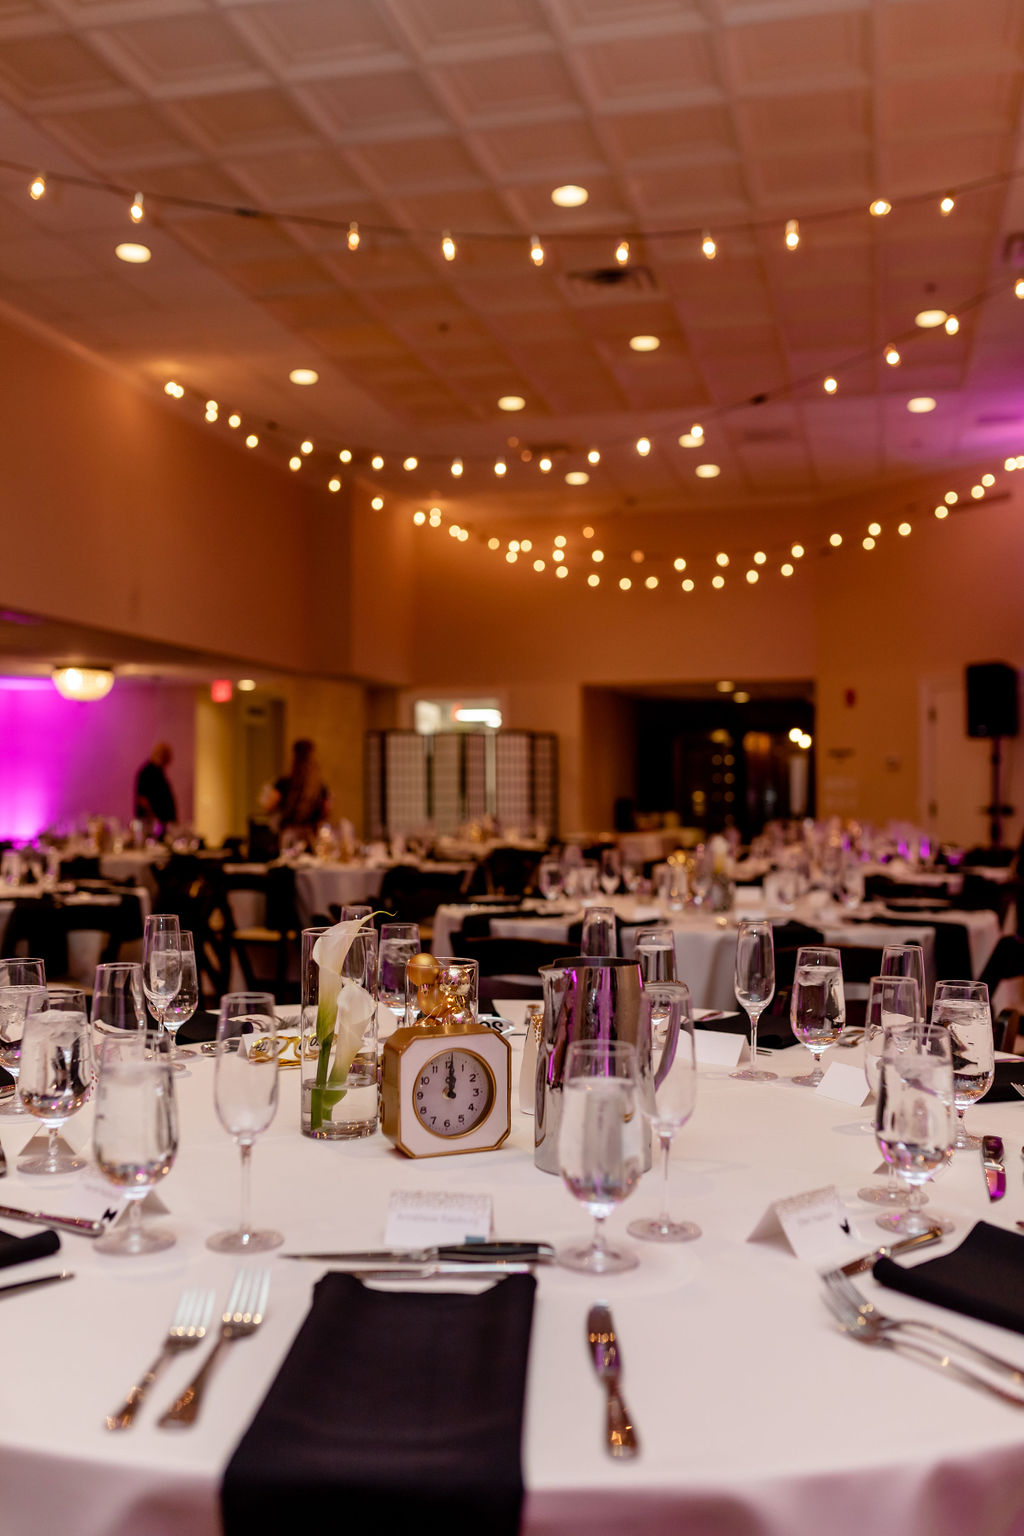 New Years Eve wedding table details with black napkins, ivory table linens, clocks, calla lilies and ornaments with twinkly lights - Pearl Weddings & Events